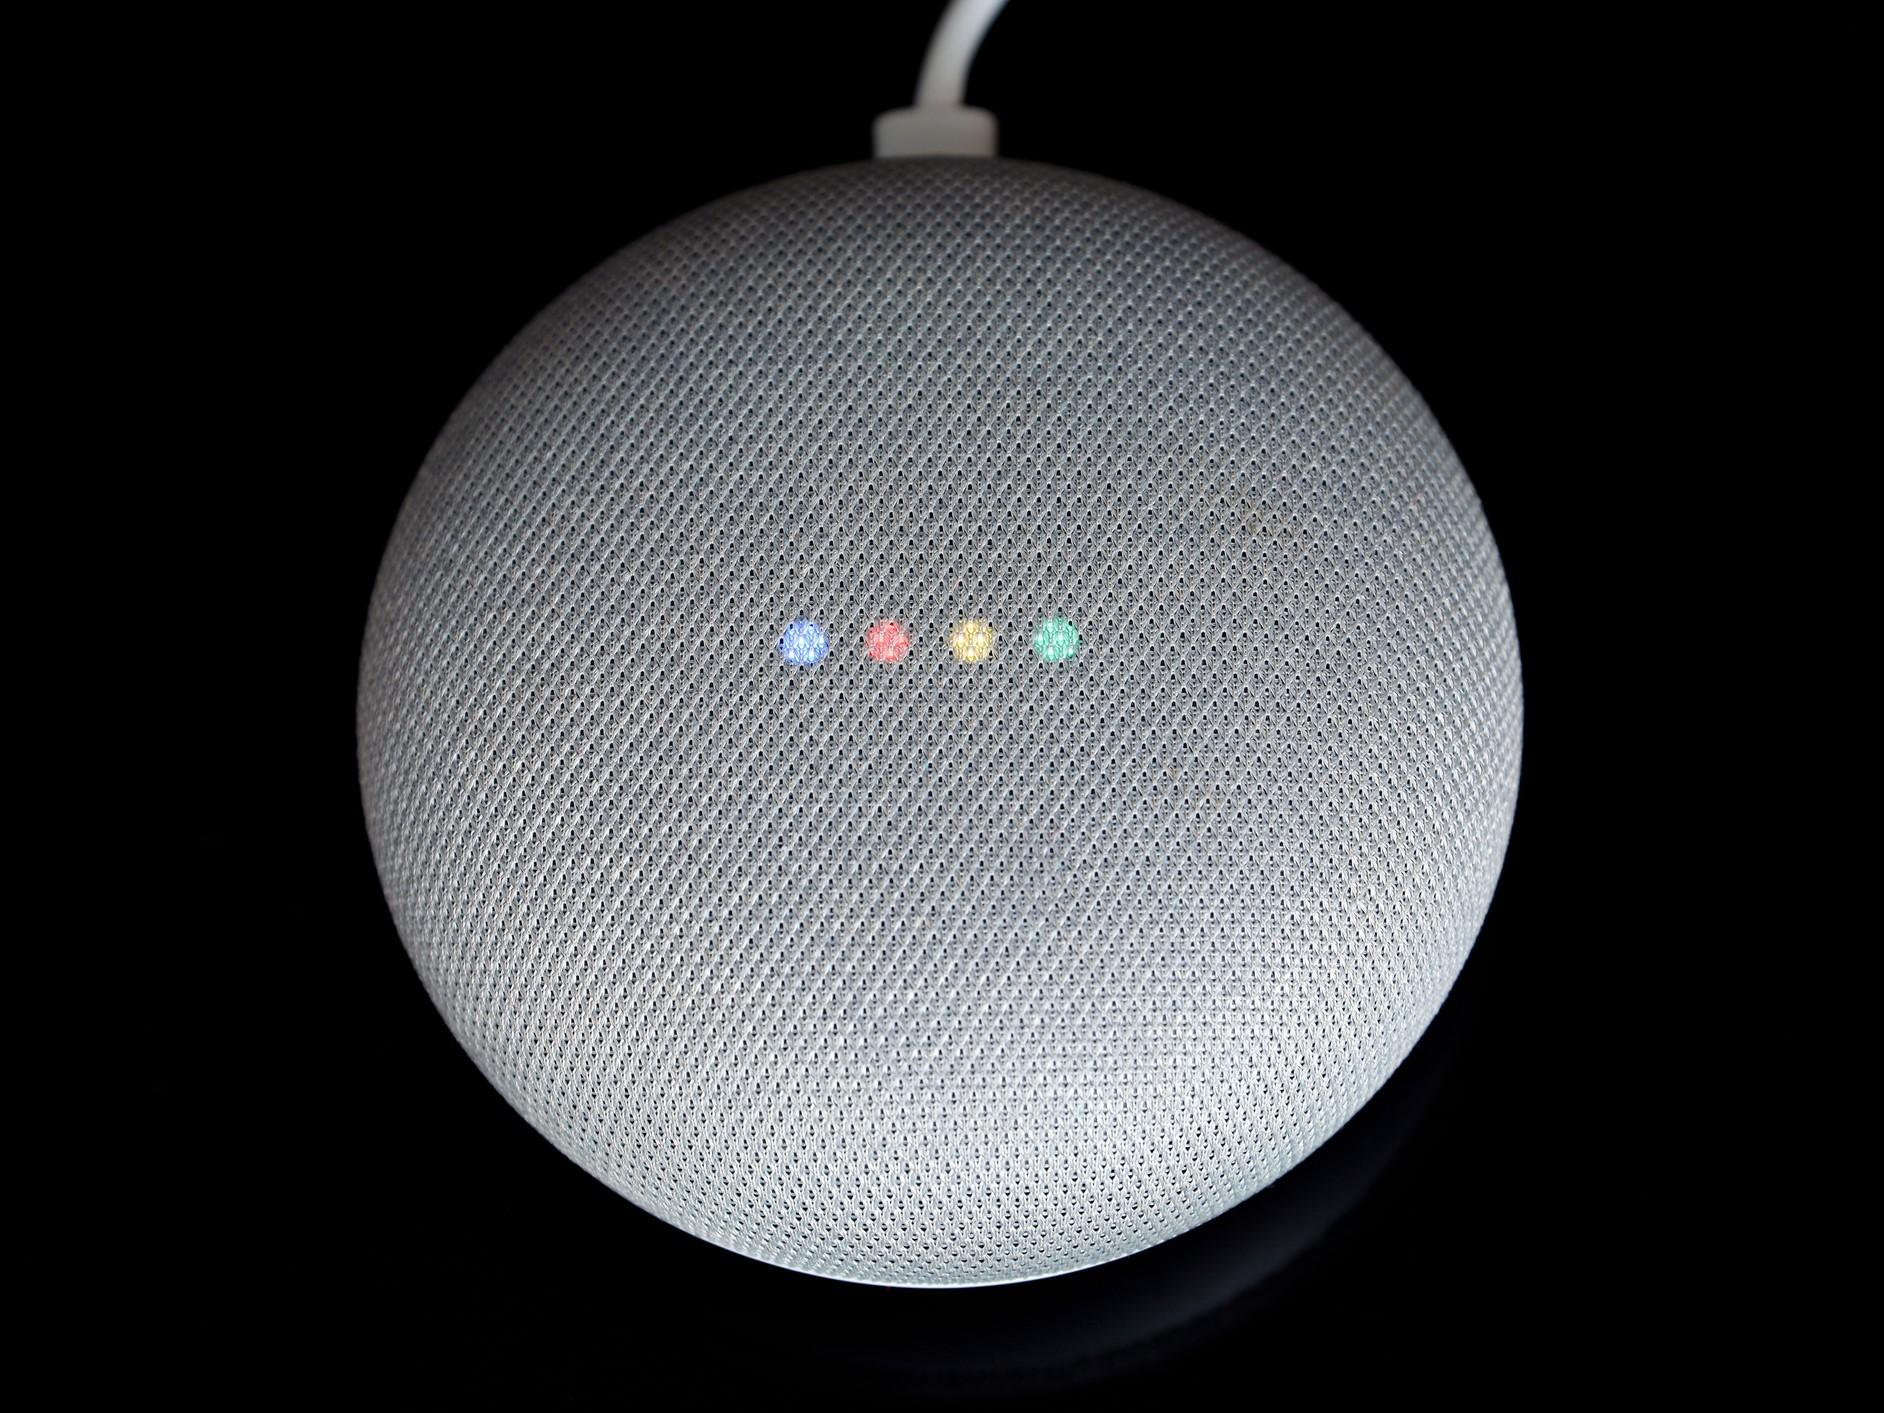 Google accidentally enables Home smart speakers to listen in to everyday house sounds